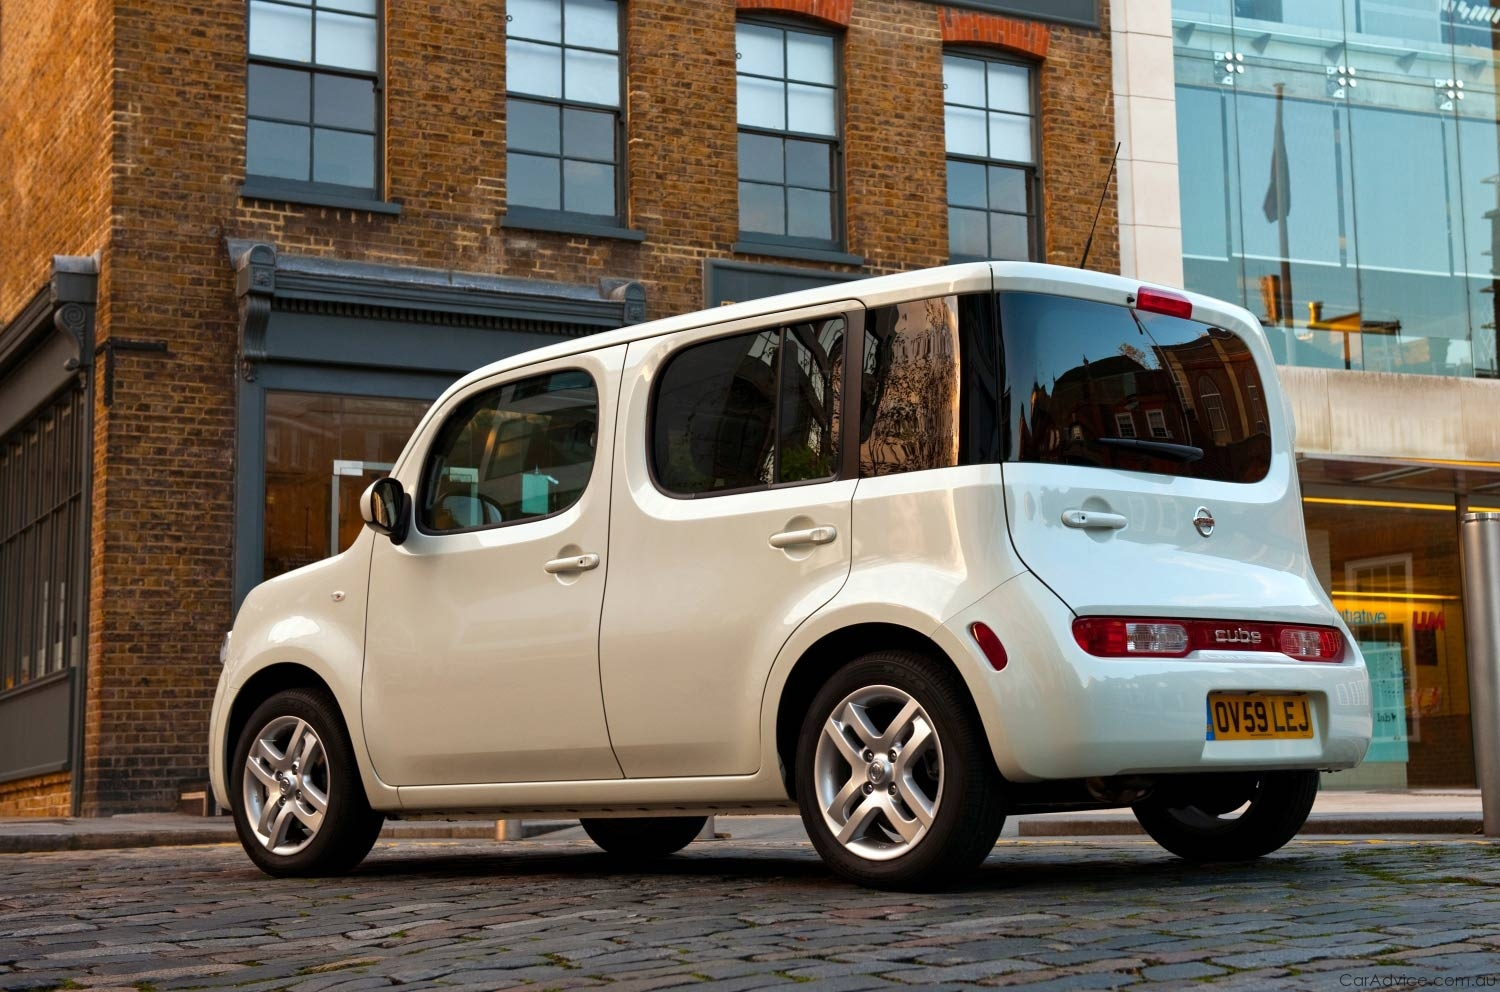 Nissan Cube set for UK streets in 2010 - Photos (1 of 6)